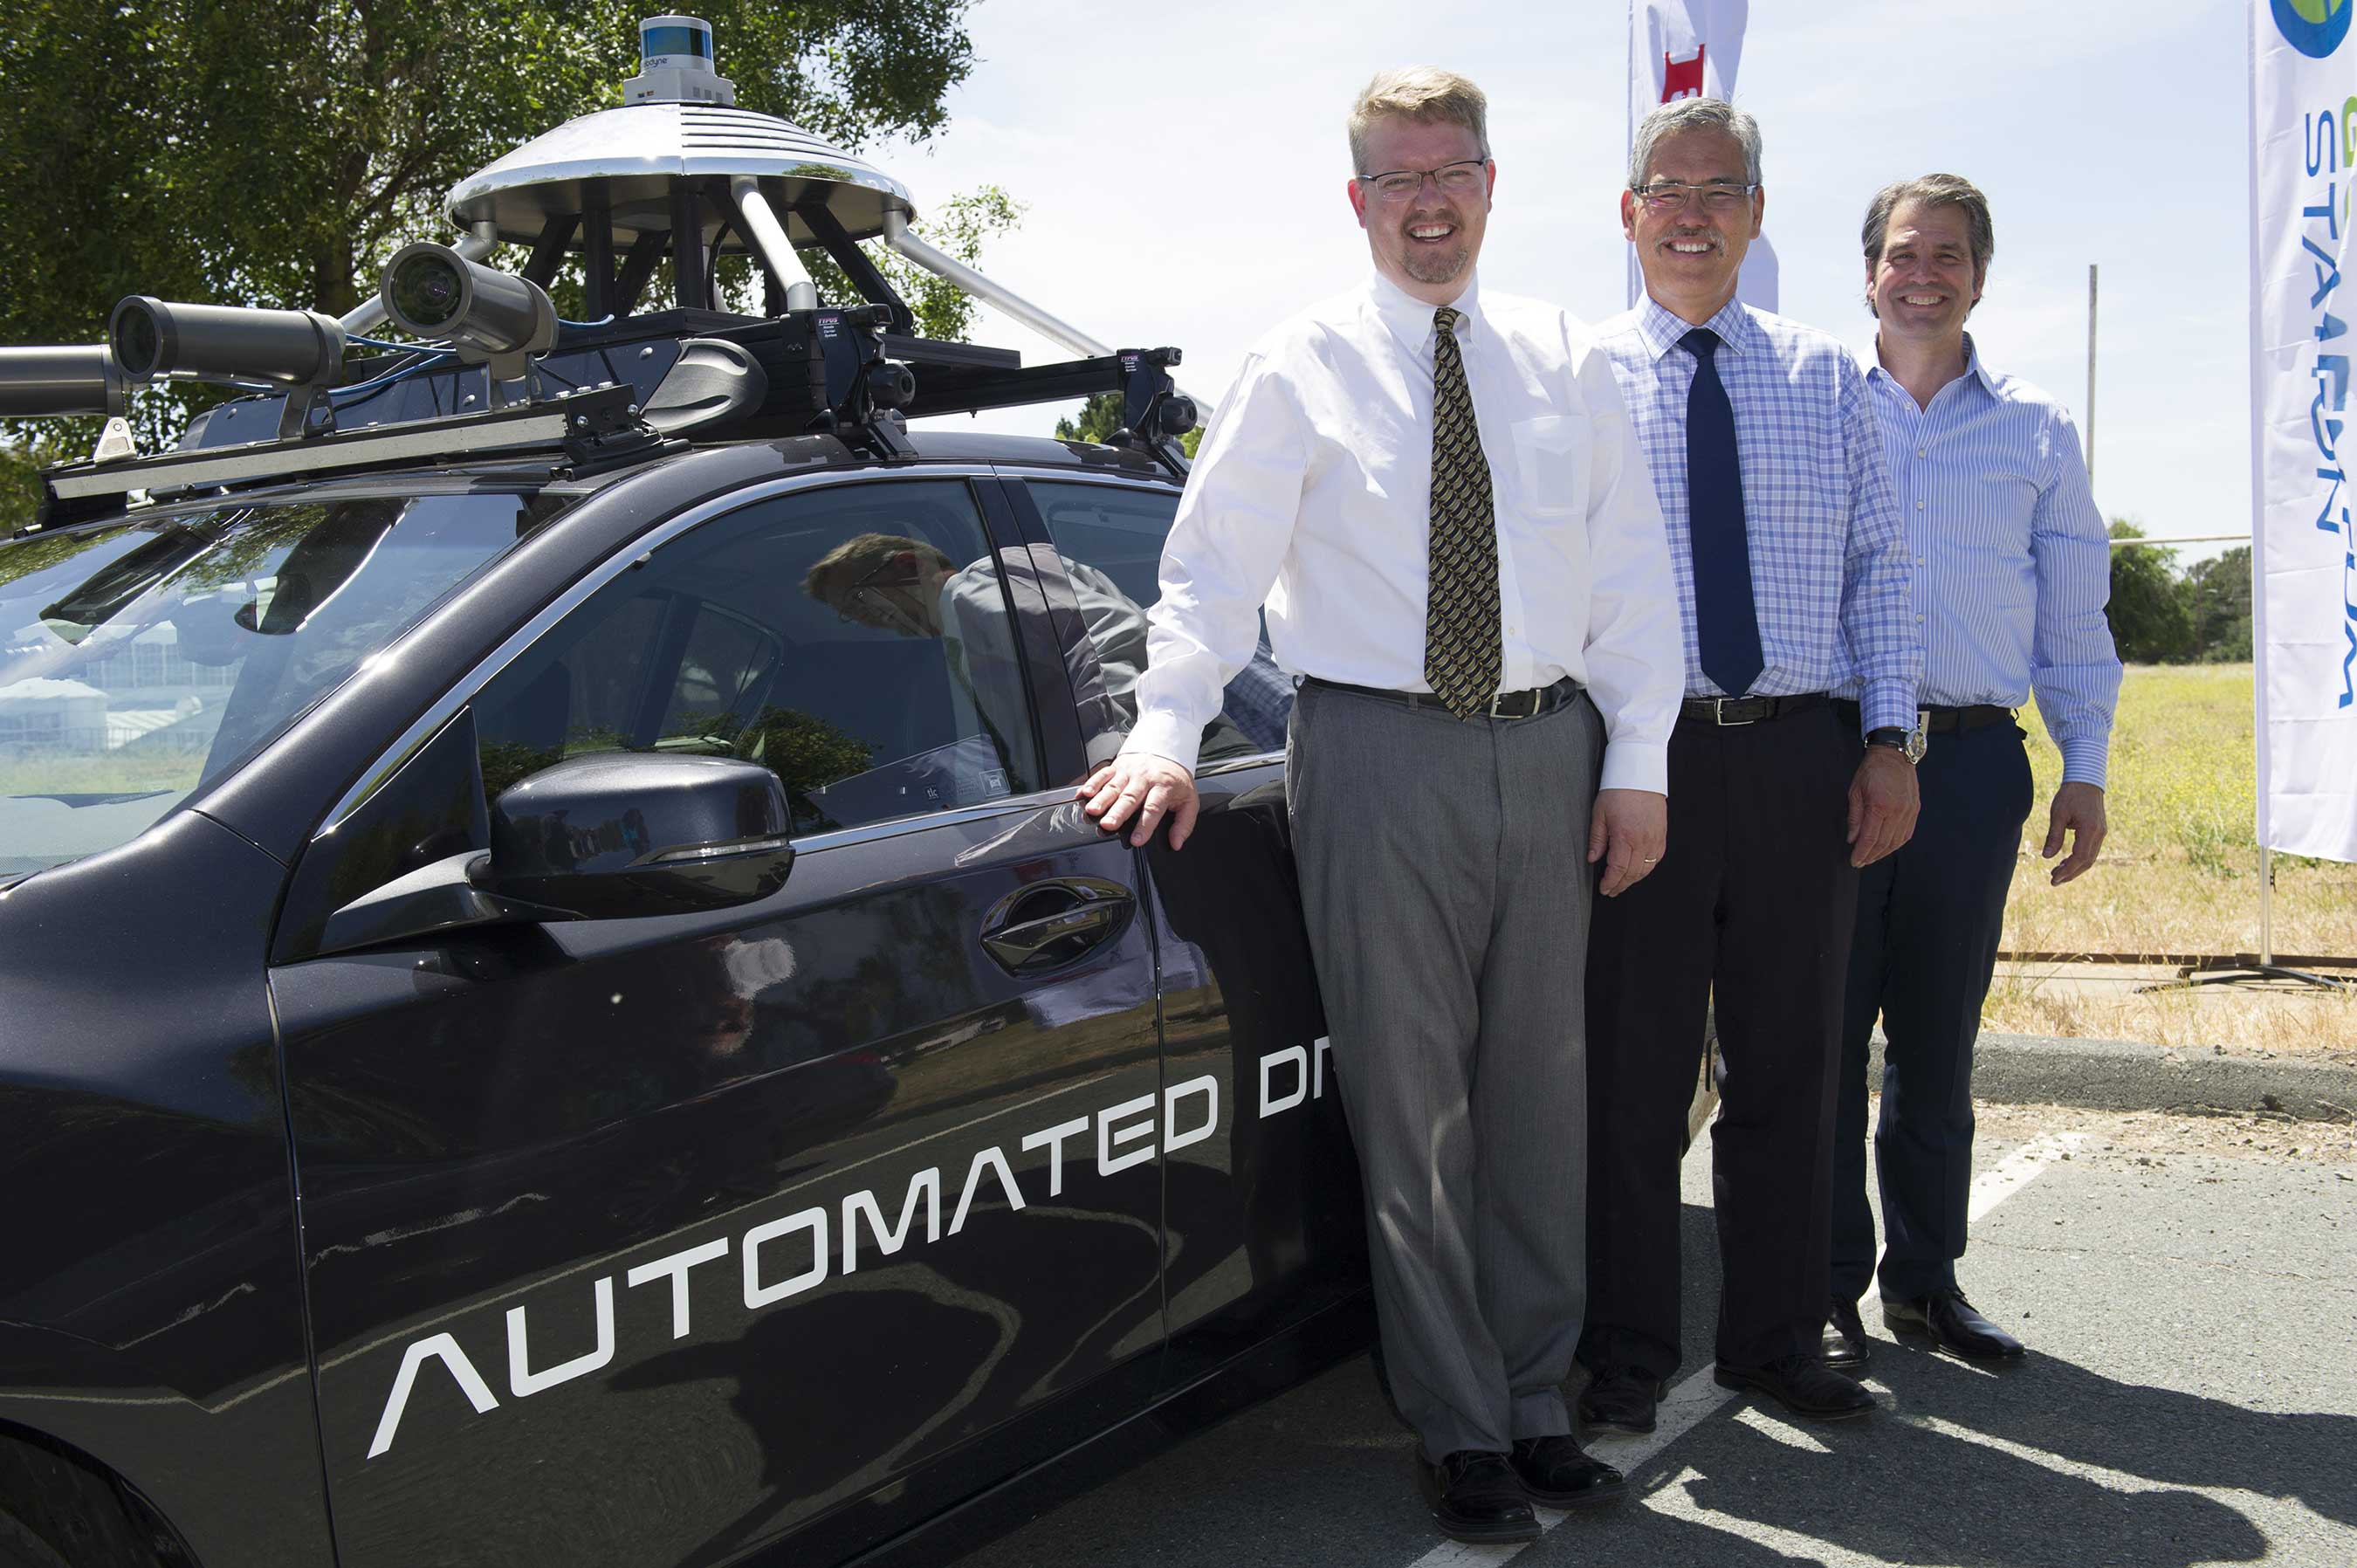 GOMENTUM STATION AND HONDA OFFER DEMO OF AUTONOMOUS VEHICLE TECHNOLOGY